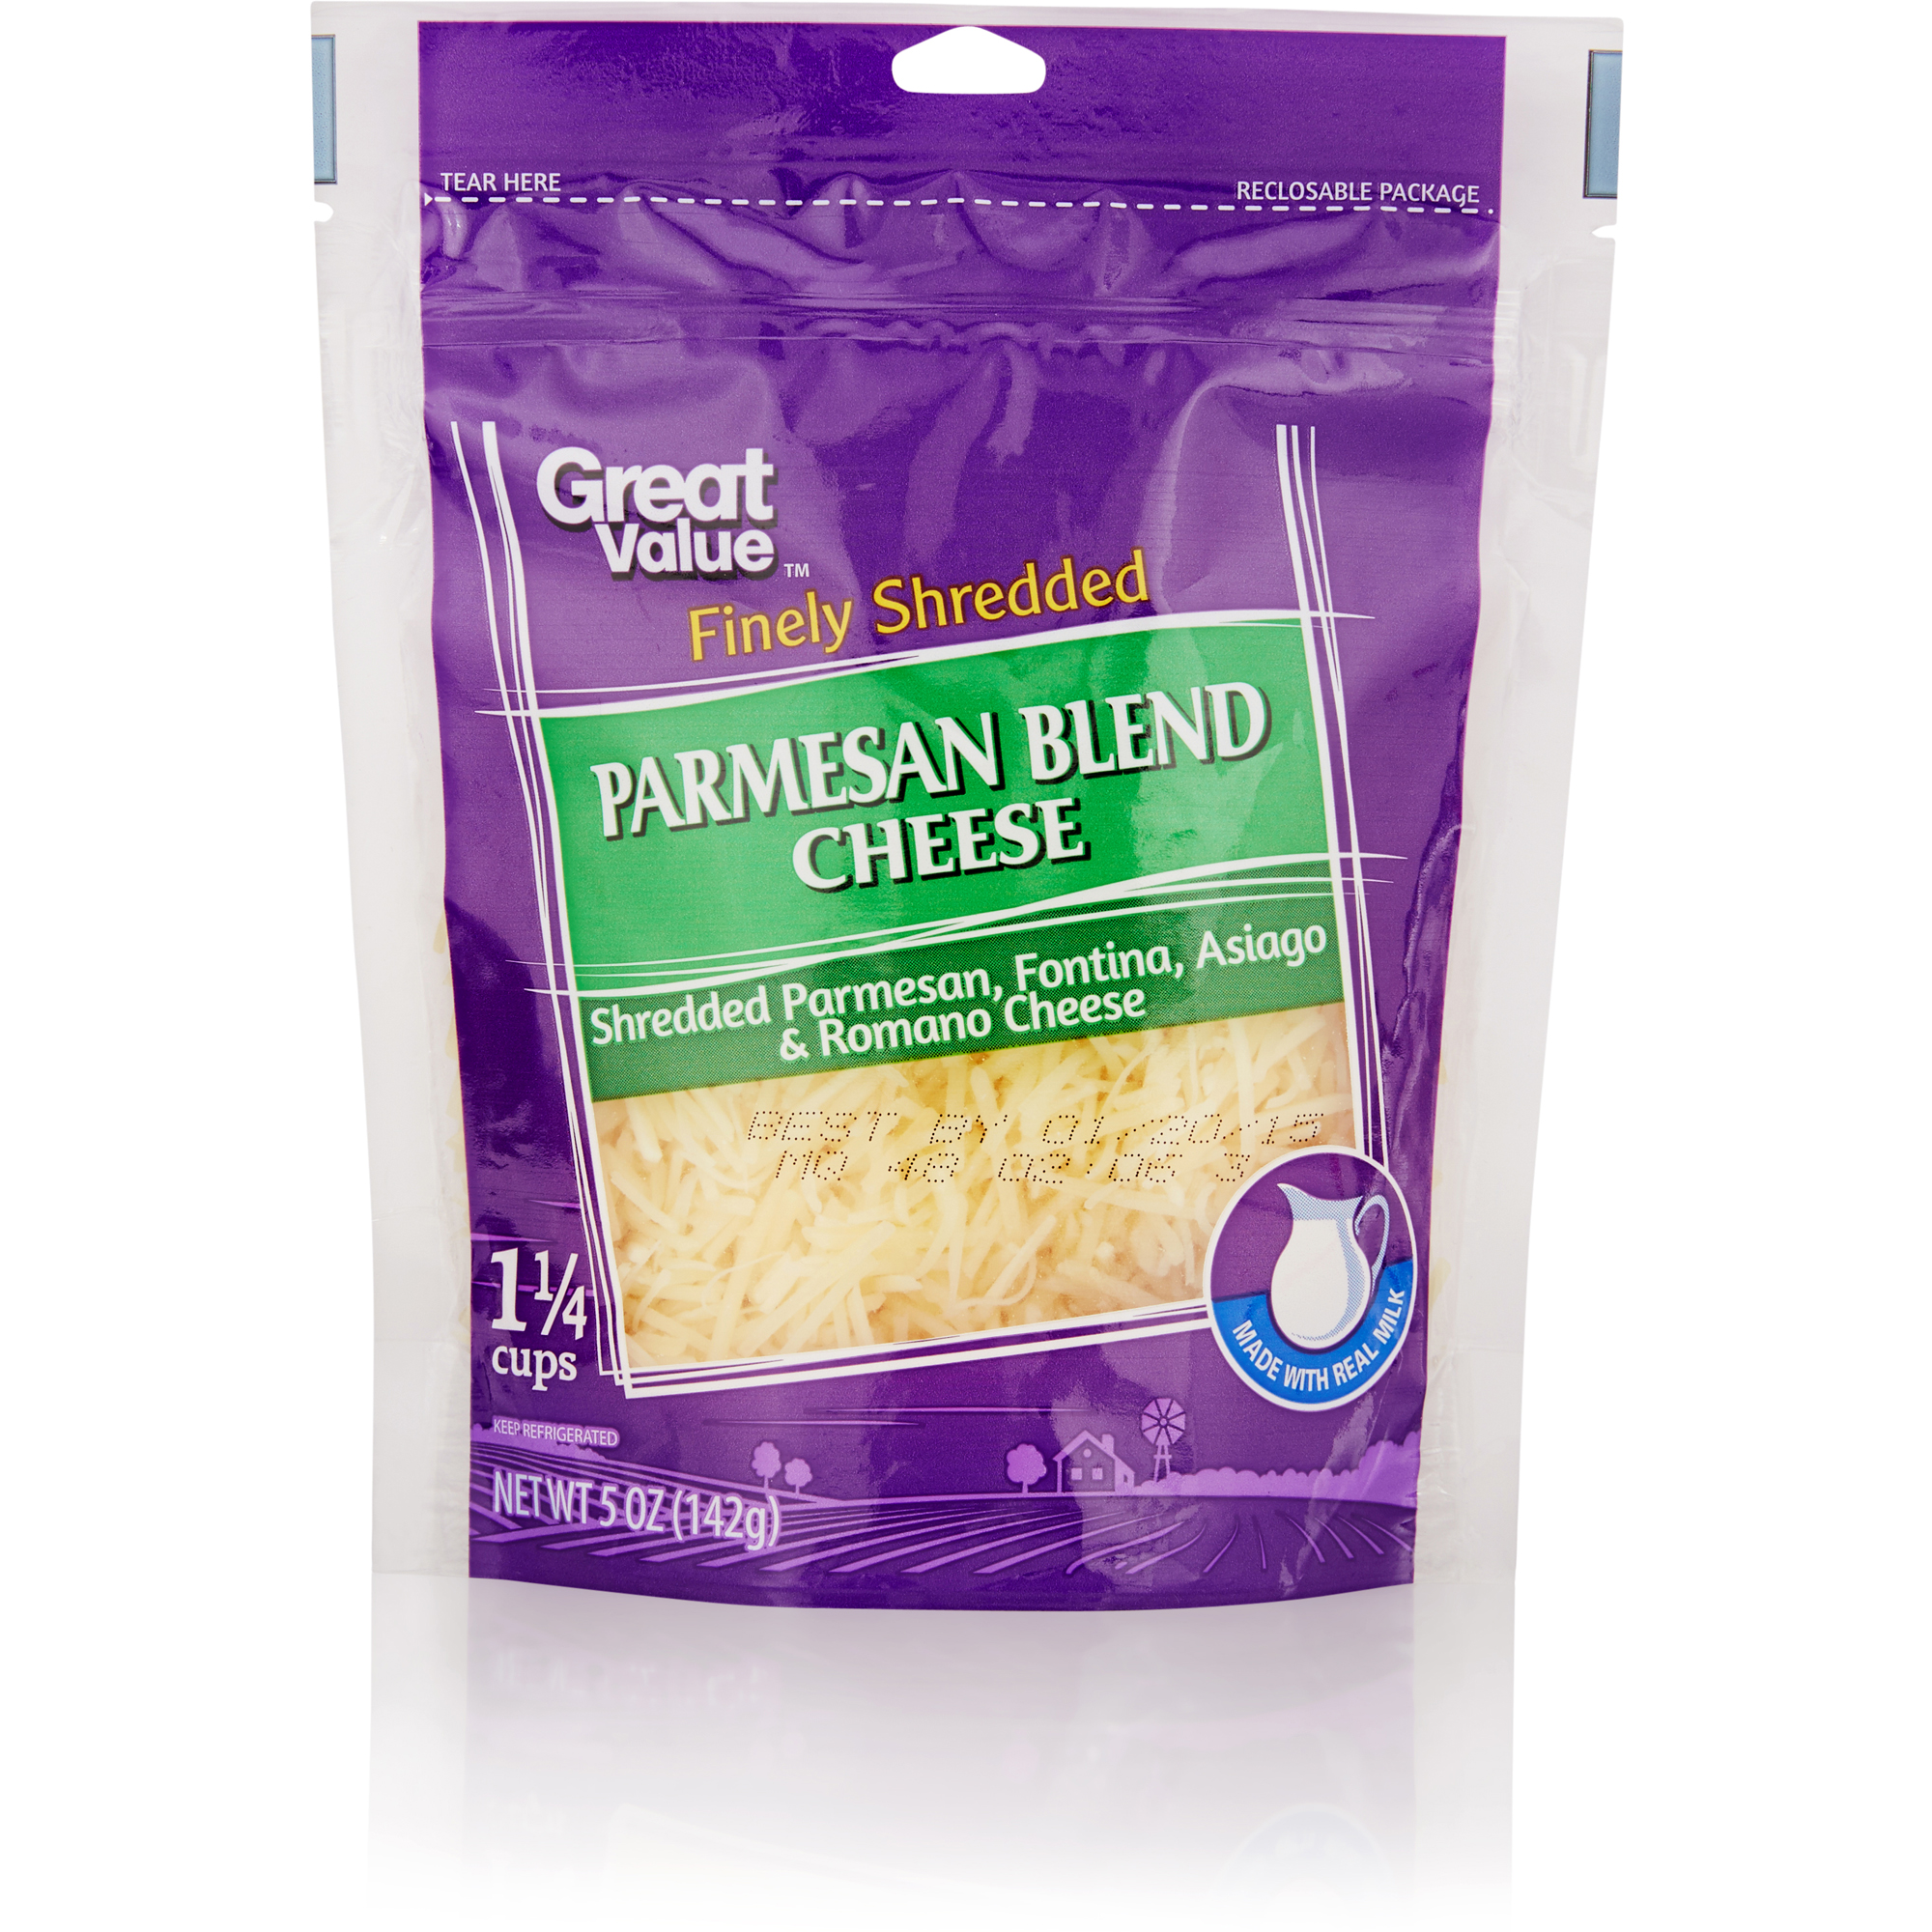 Great Value Finely Shredded Parmesan Blend Cheese, 5 oz